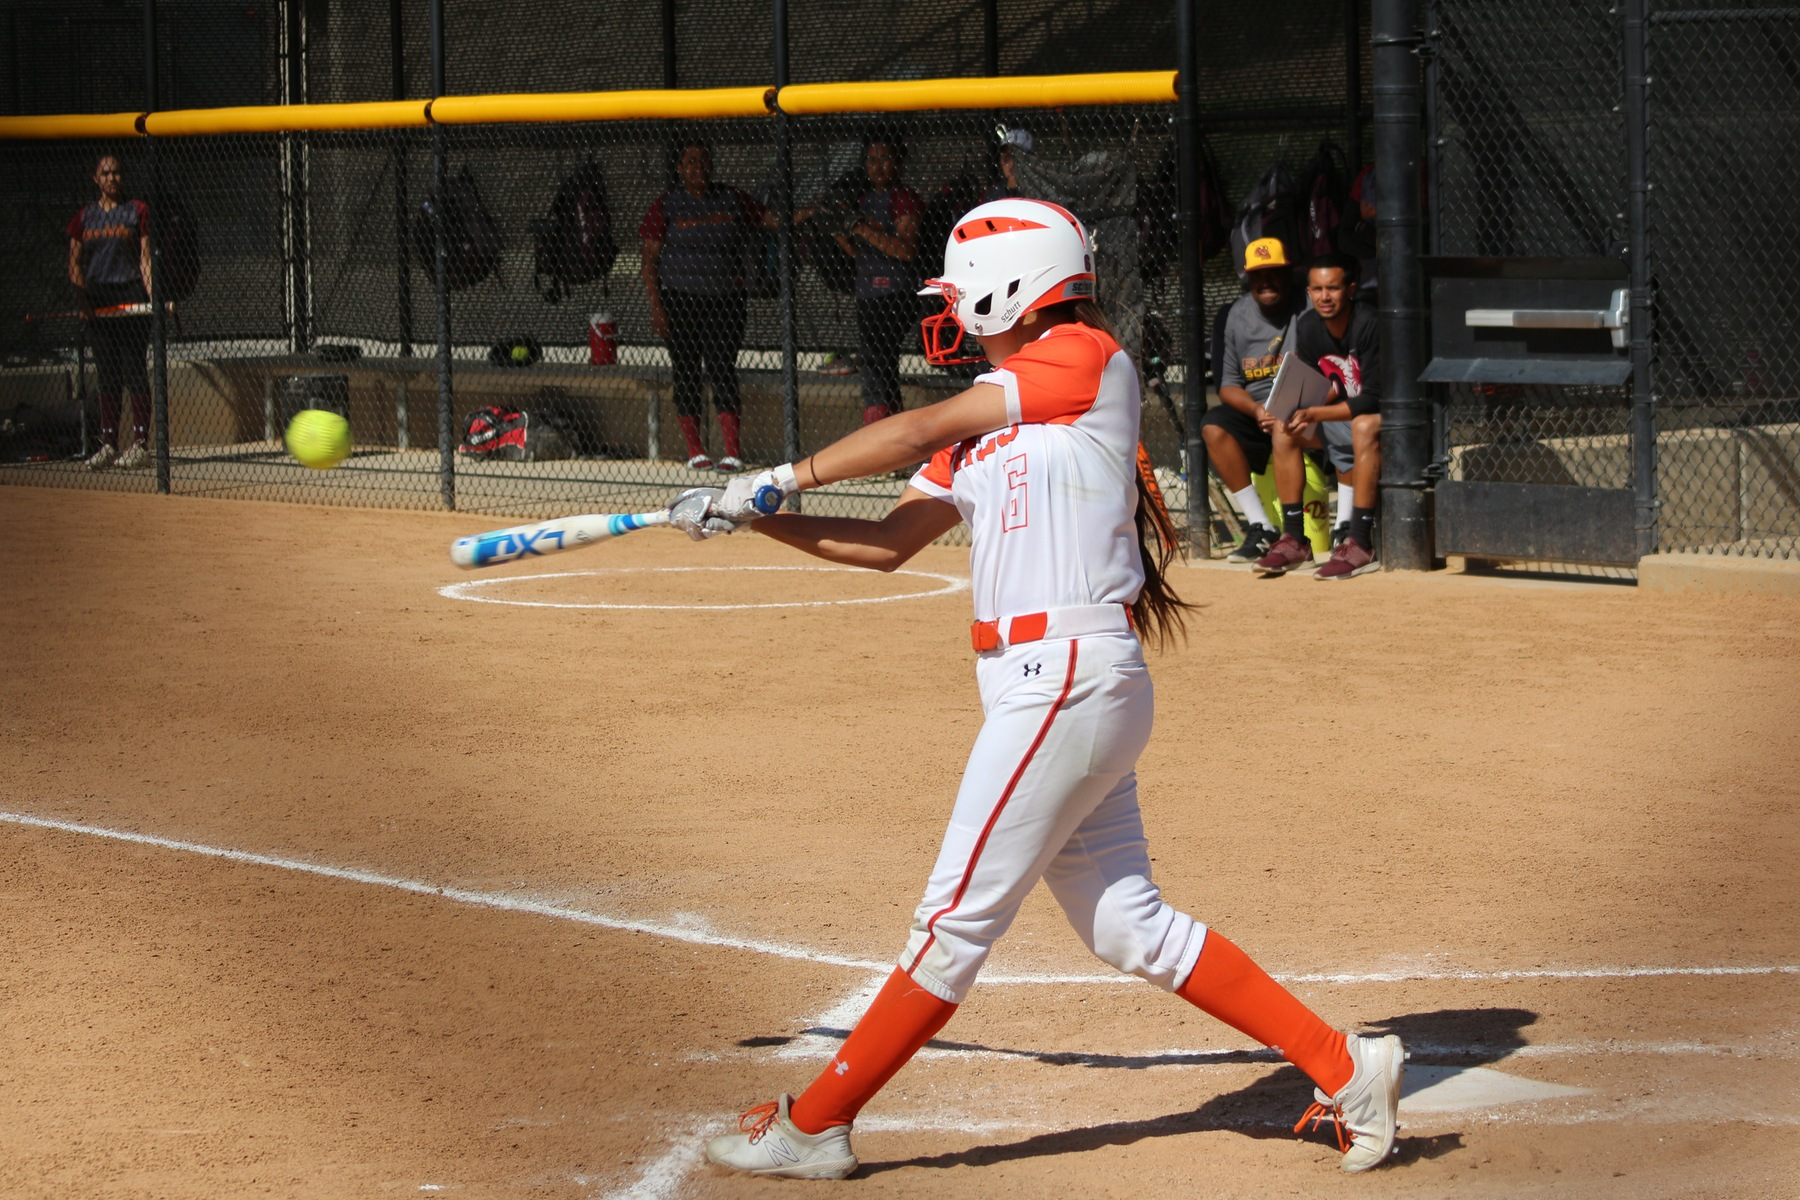 Pasadena Trip Results In Split Day For Softball